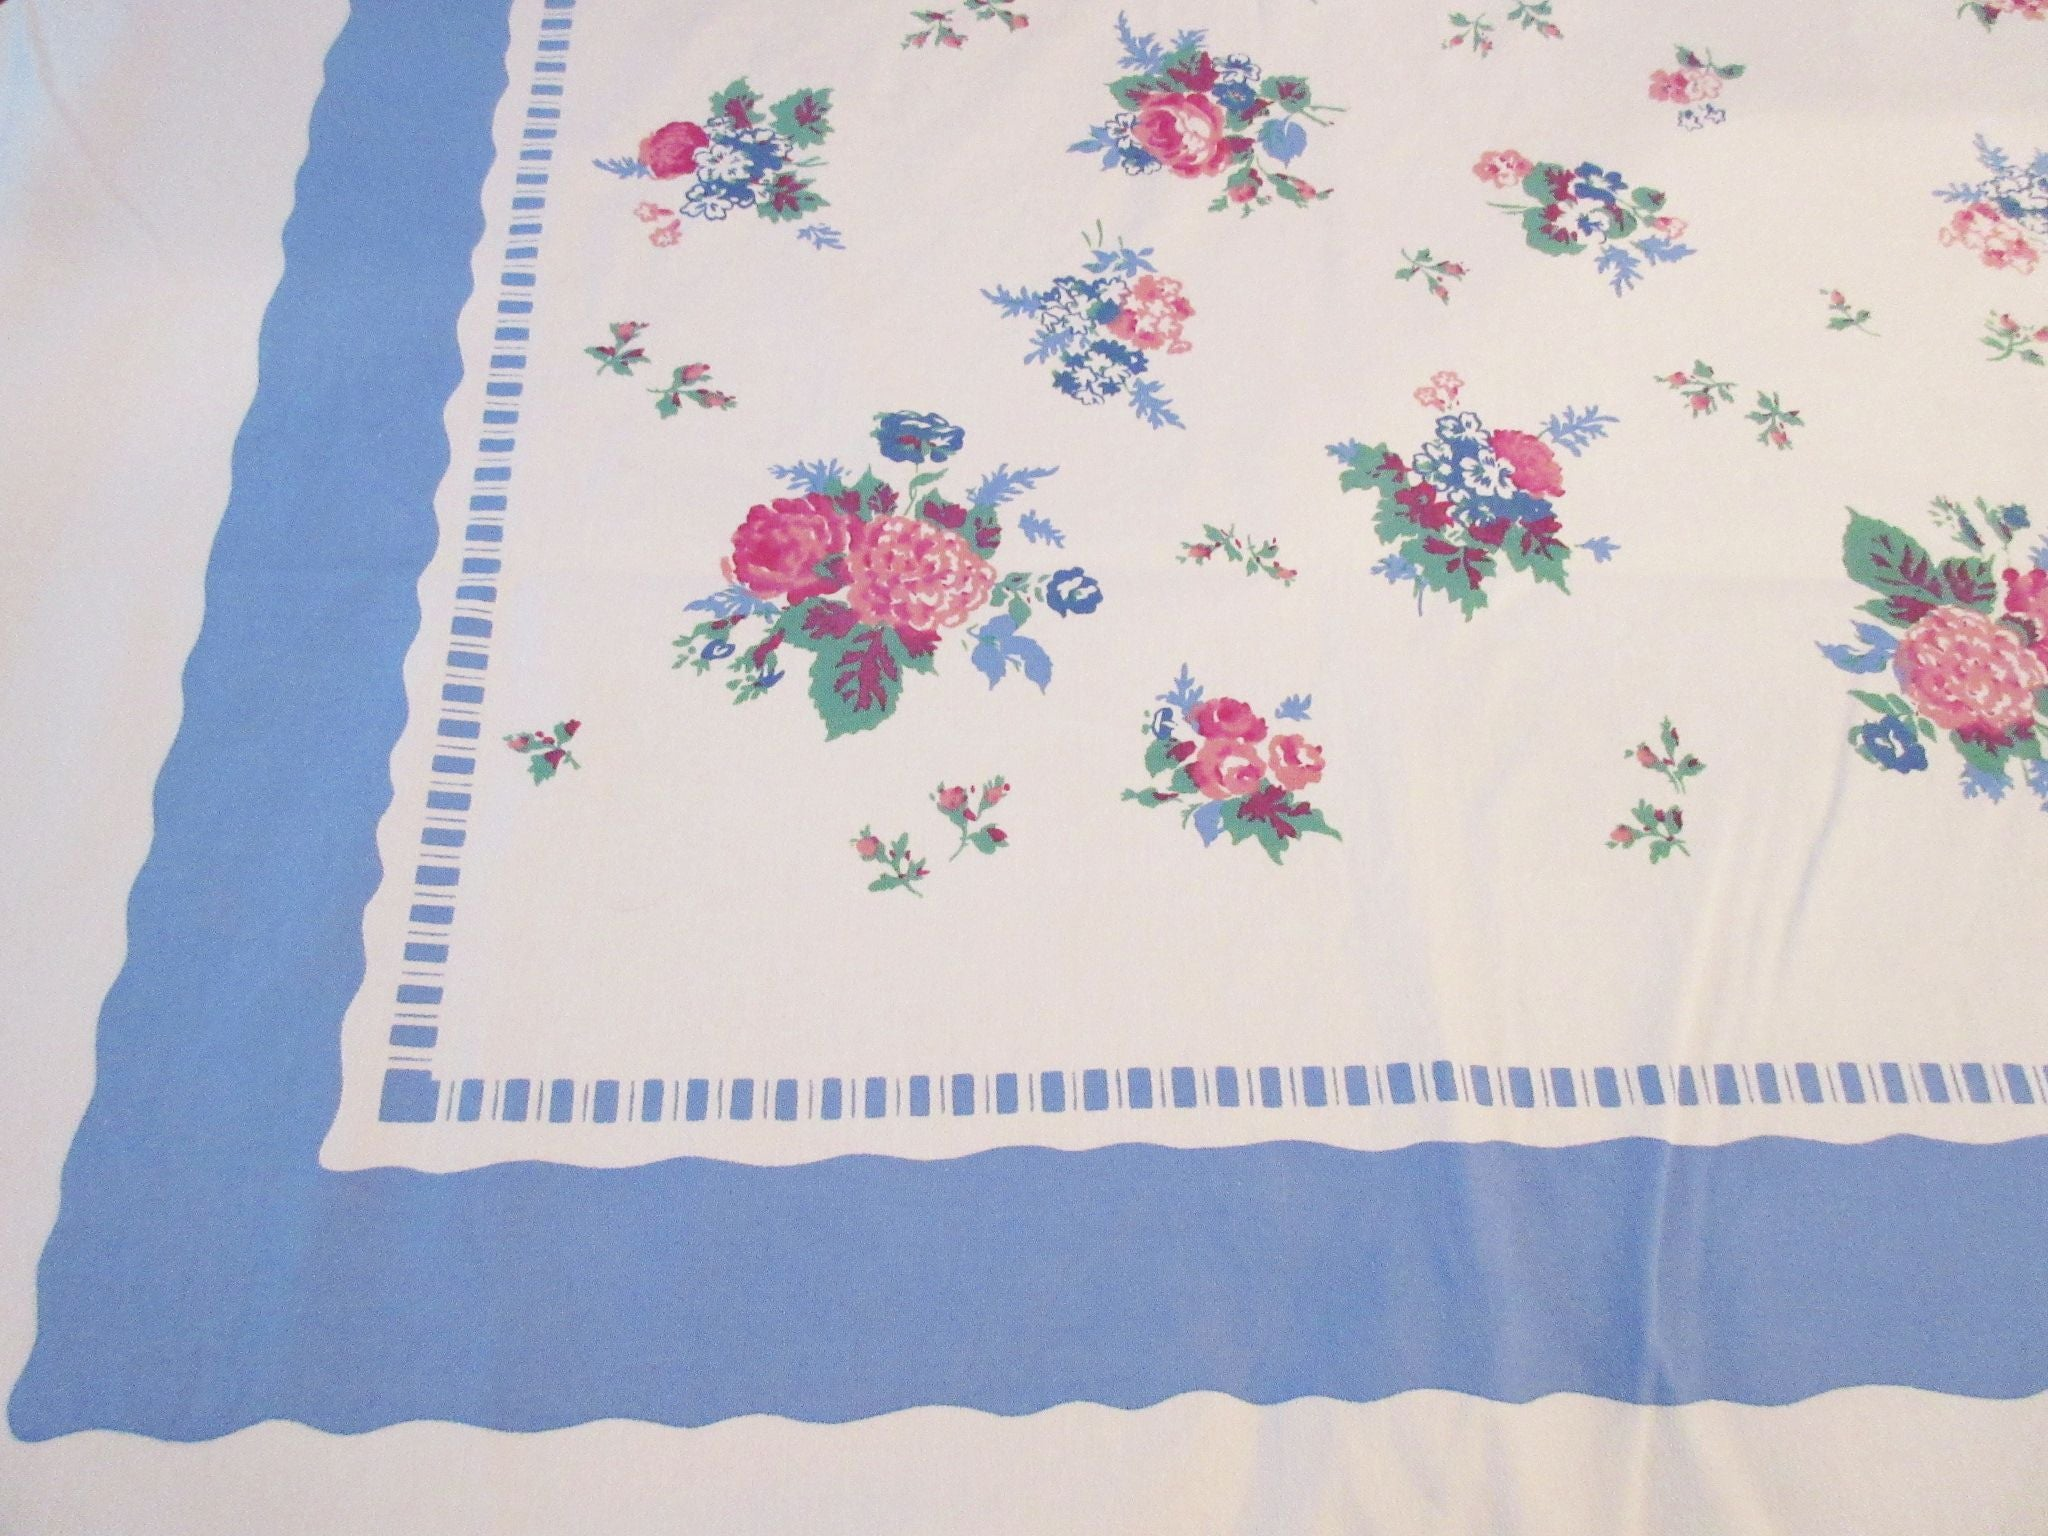 Larger Romantic Pink Roses on Blue Floral Vintage Printed Tablecloth (82 X 54)